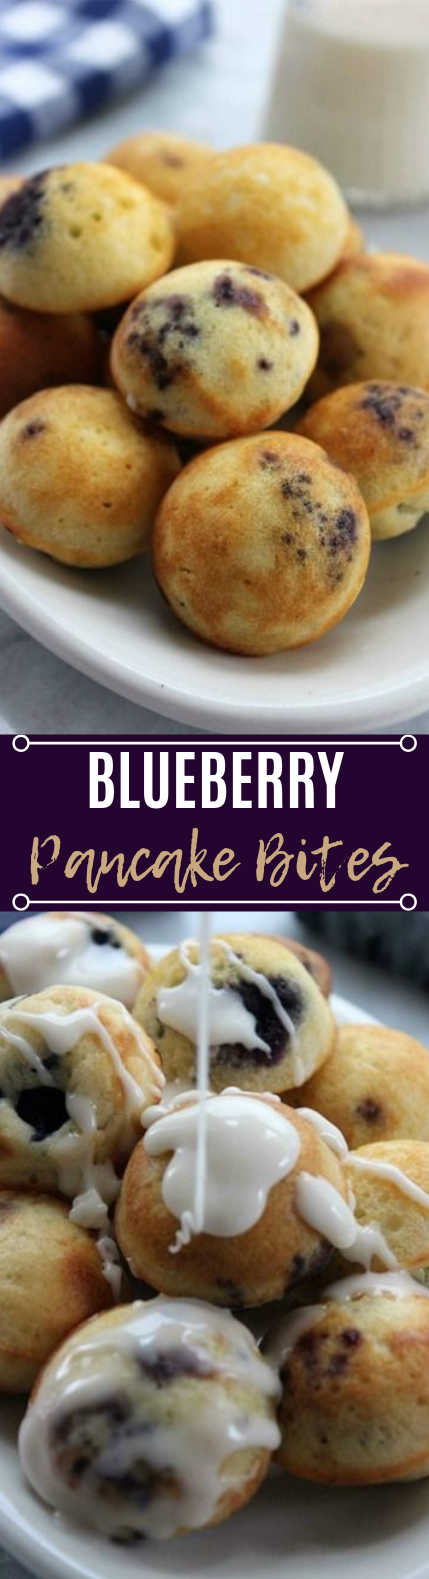 Blueberry Pancake Bites #easy #cake